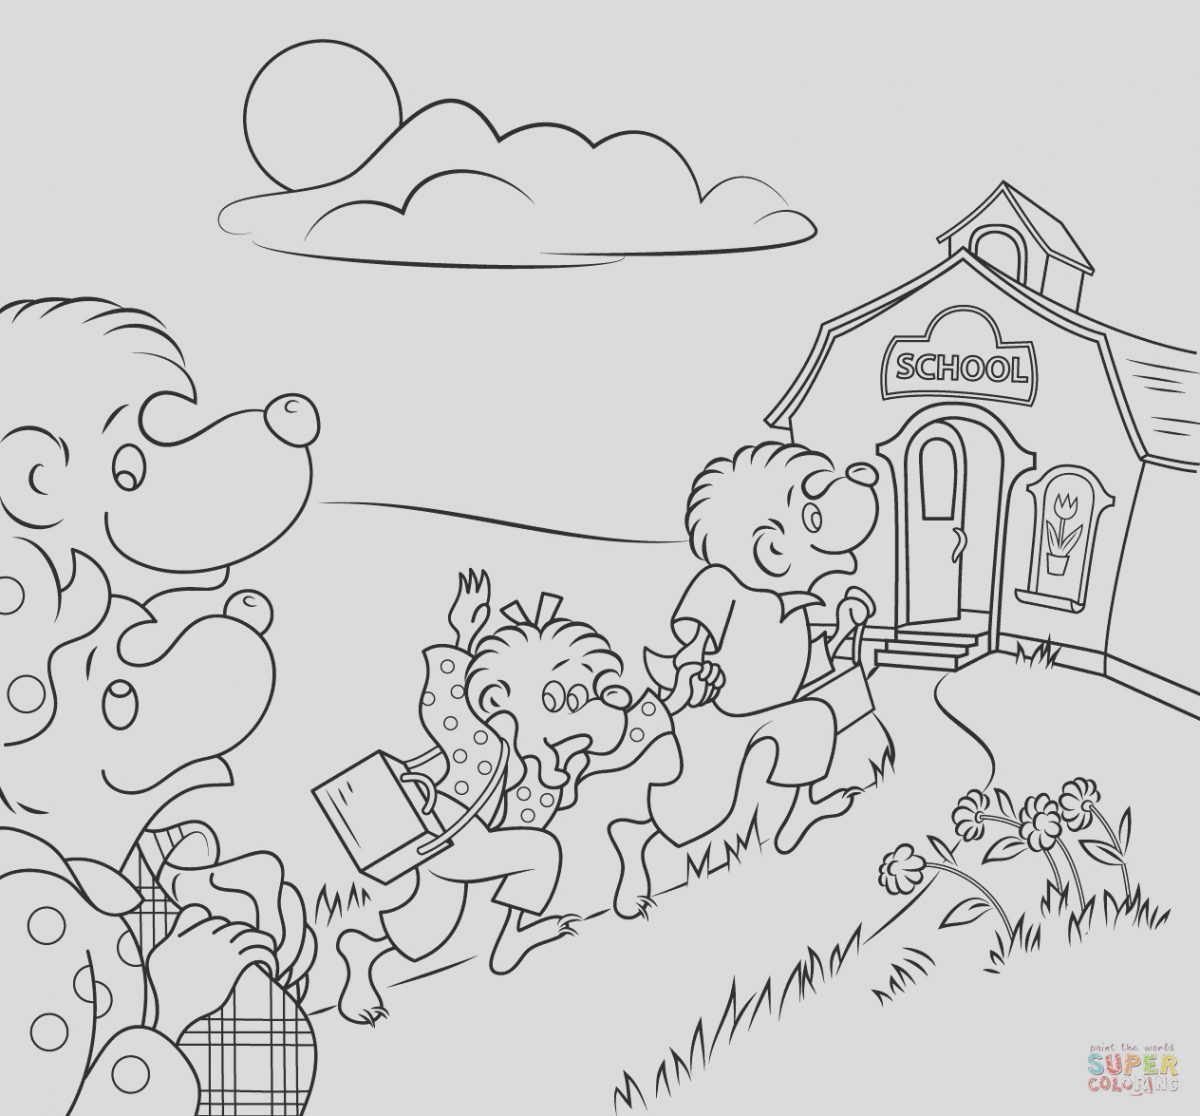 Berenstain Bears Coloring Page Lovely Berenstain Bears Go to School Coloring Page